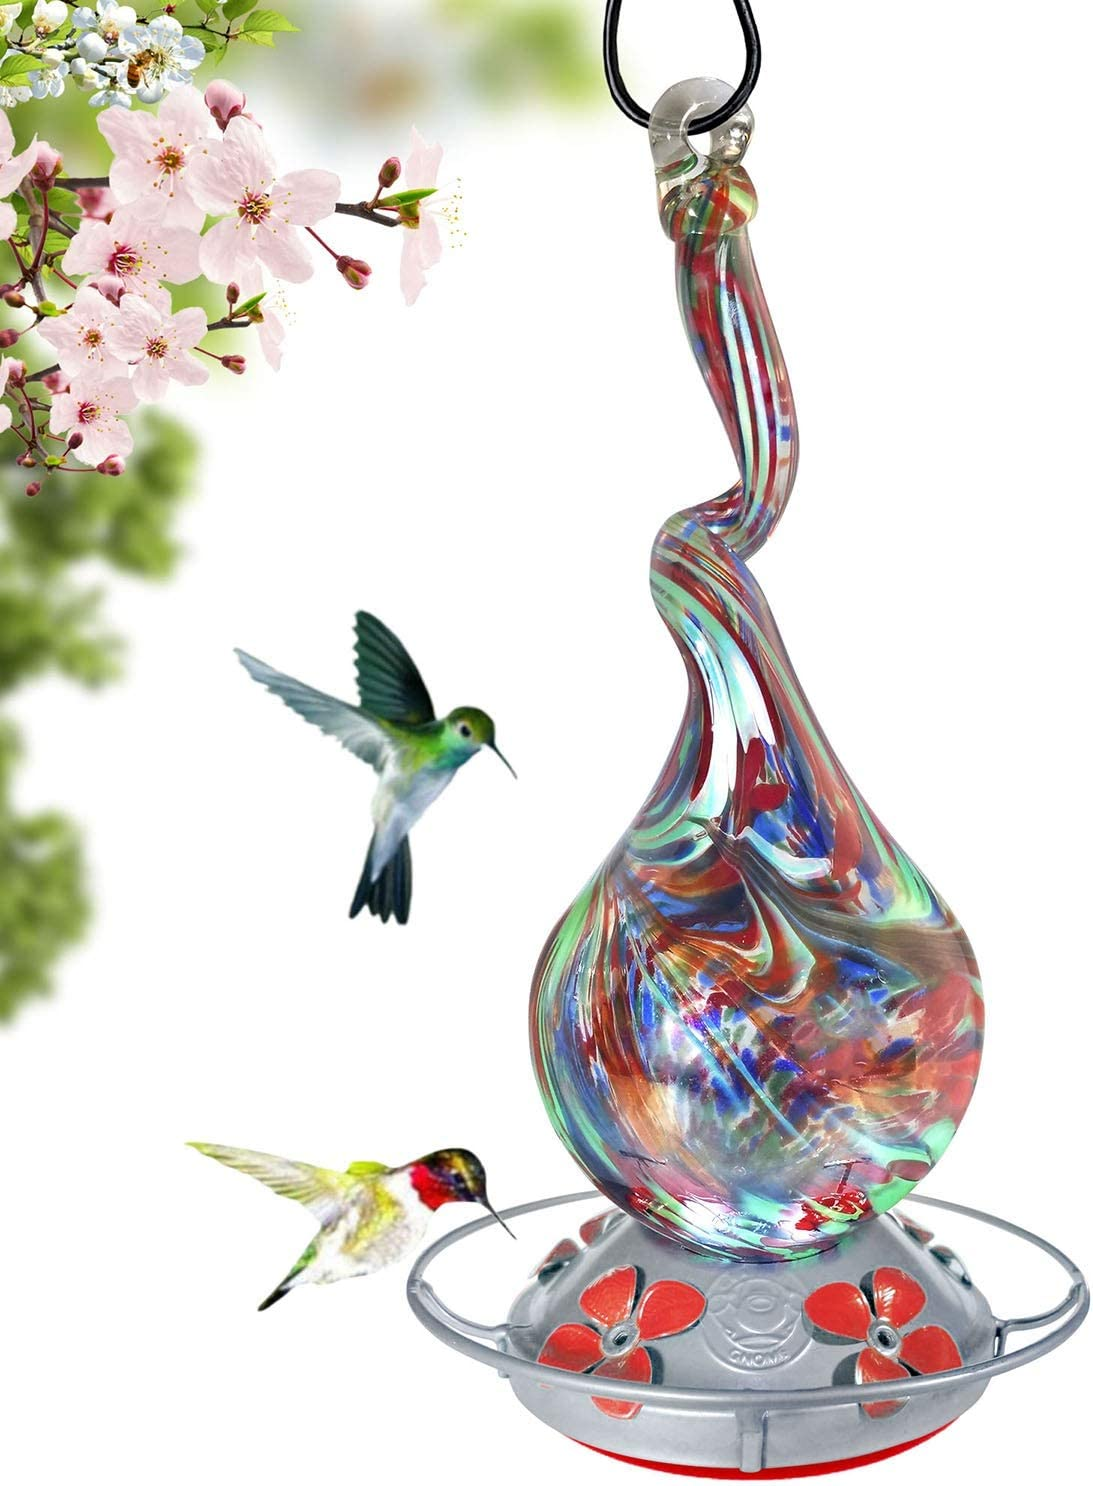 Grateful Gnome - Hummingbird Feeder - Hand Blown Glass - Gnarly Glass Neck Gourd - 16 Fluid Ounces